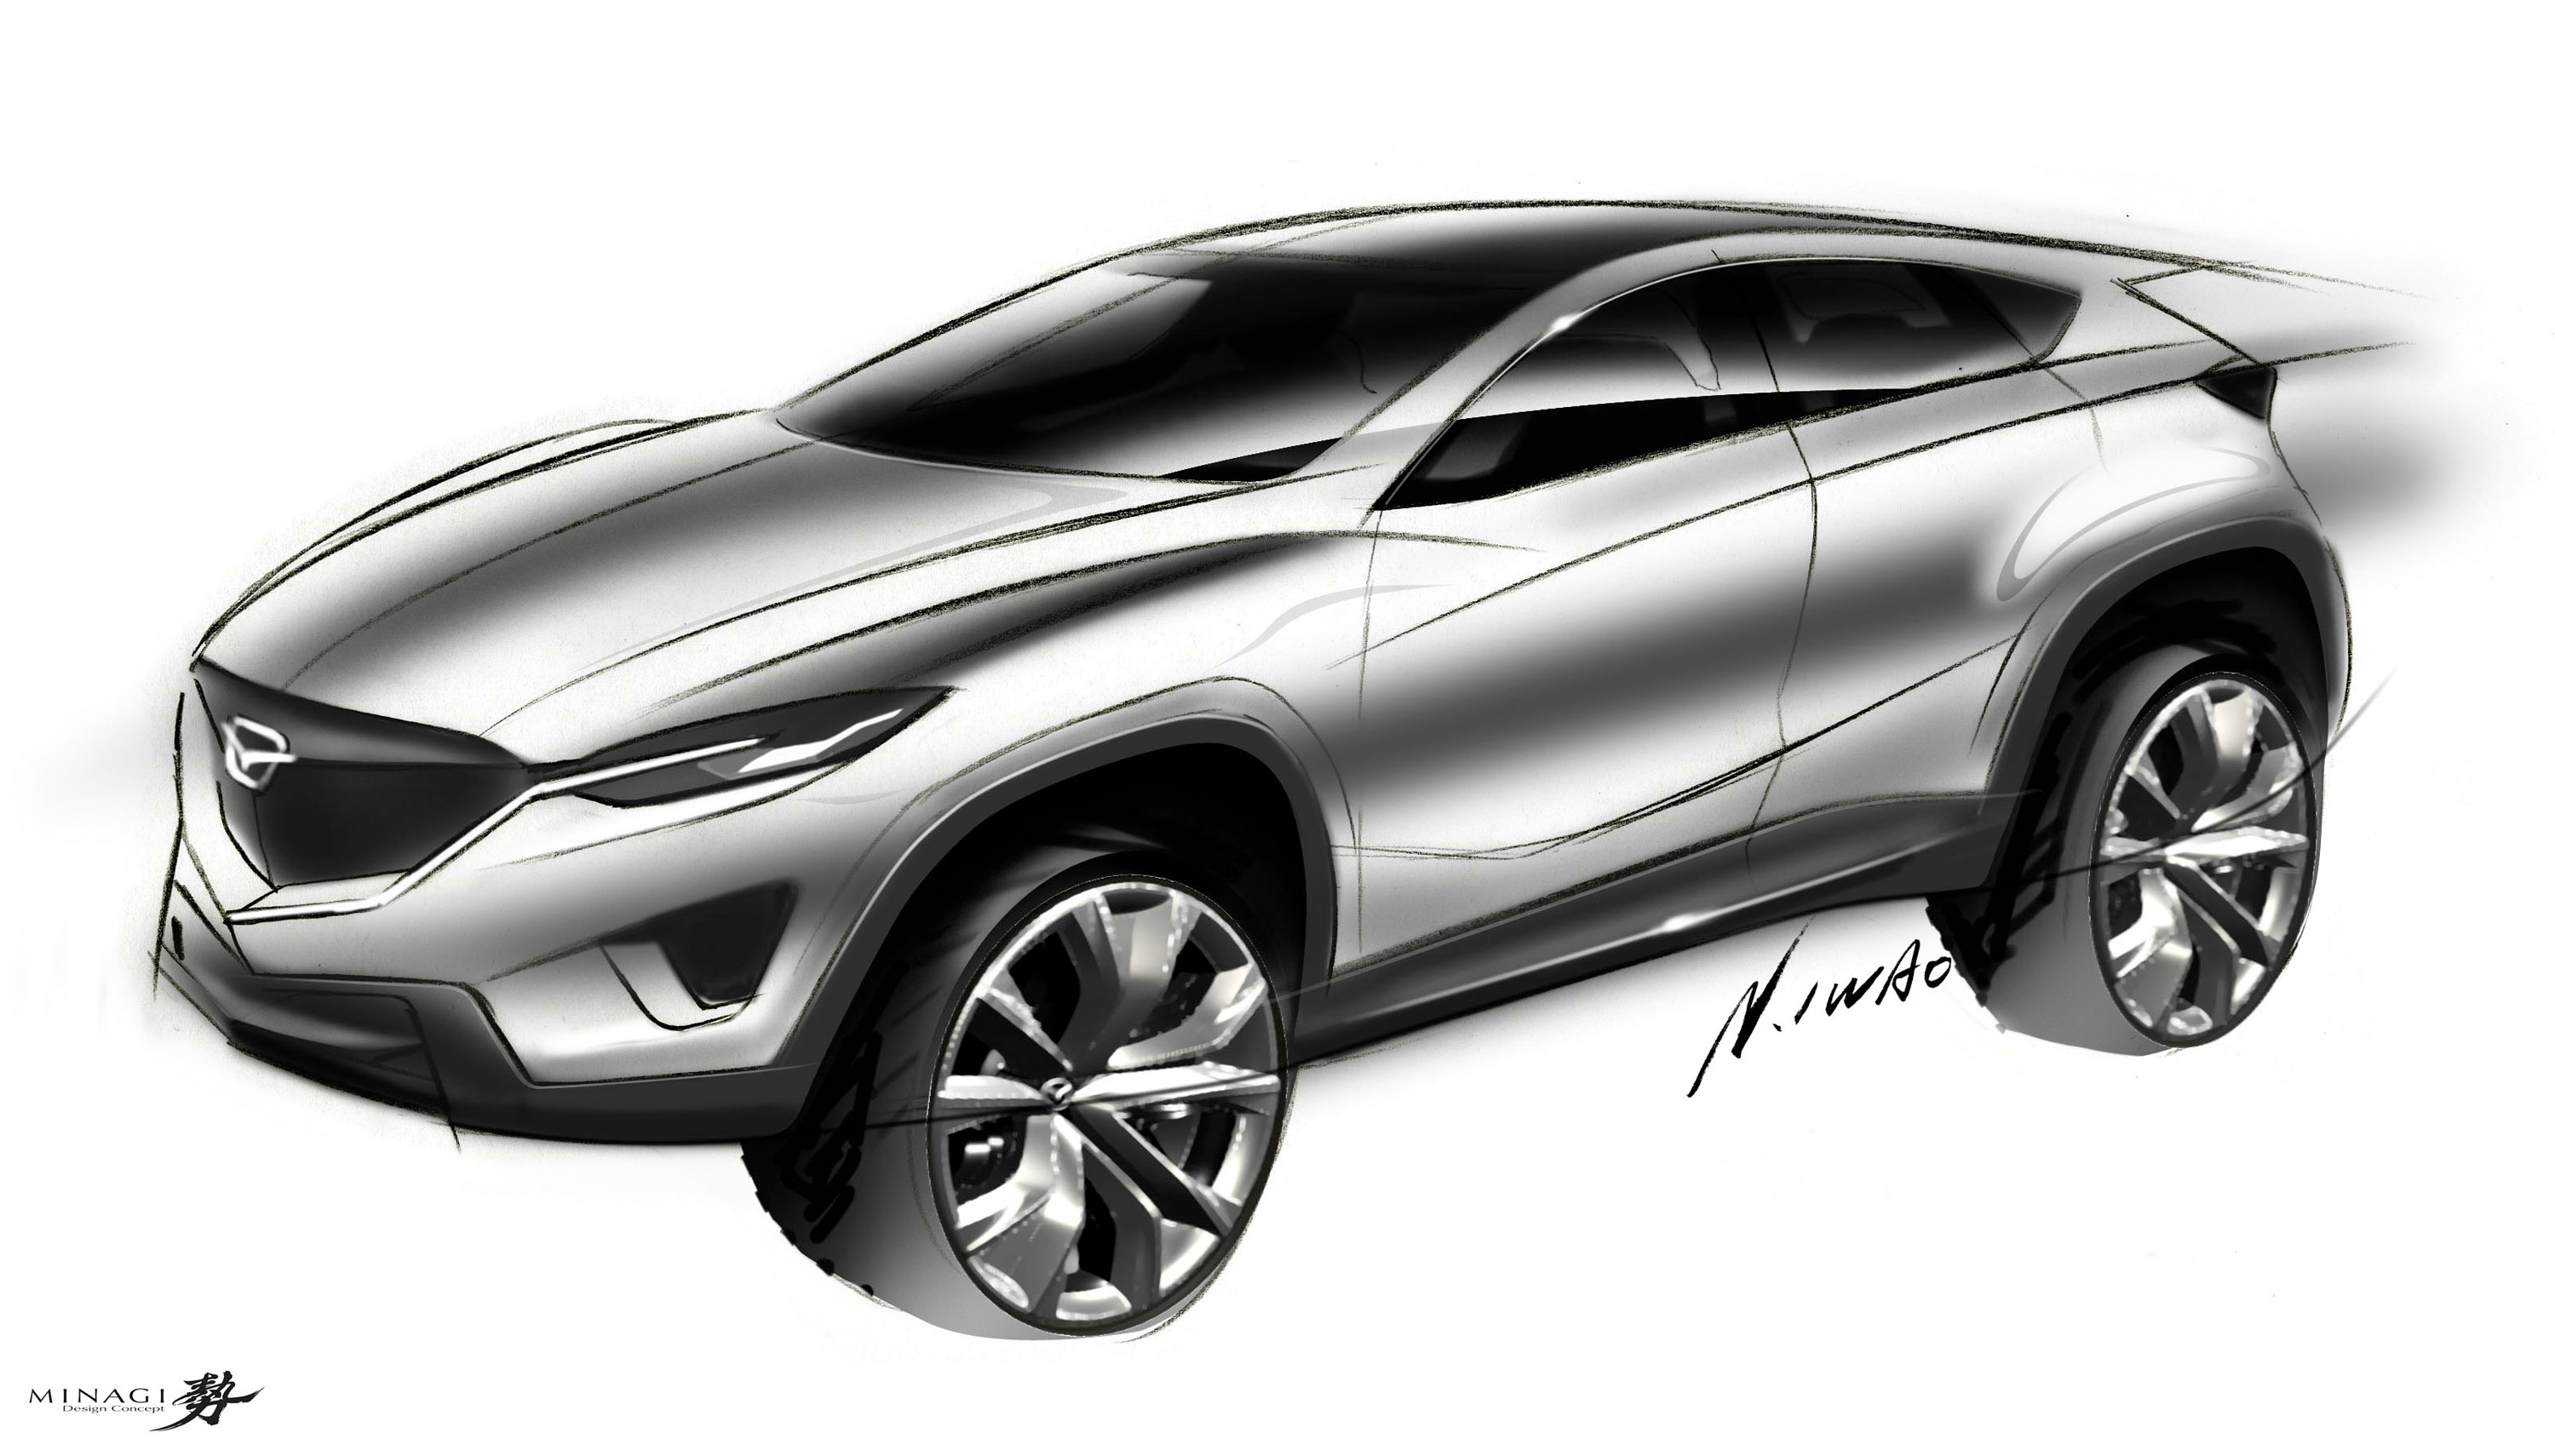 Mazda Minagi Concept Suv Art Drawing Sketch J Wallpaper